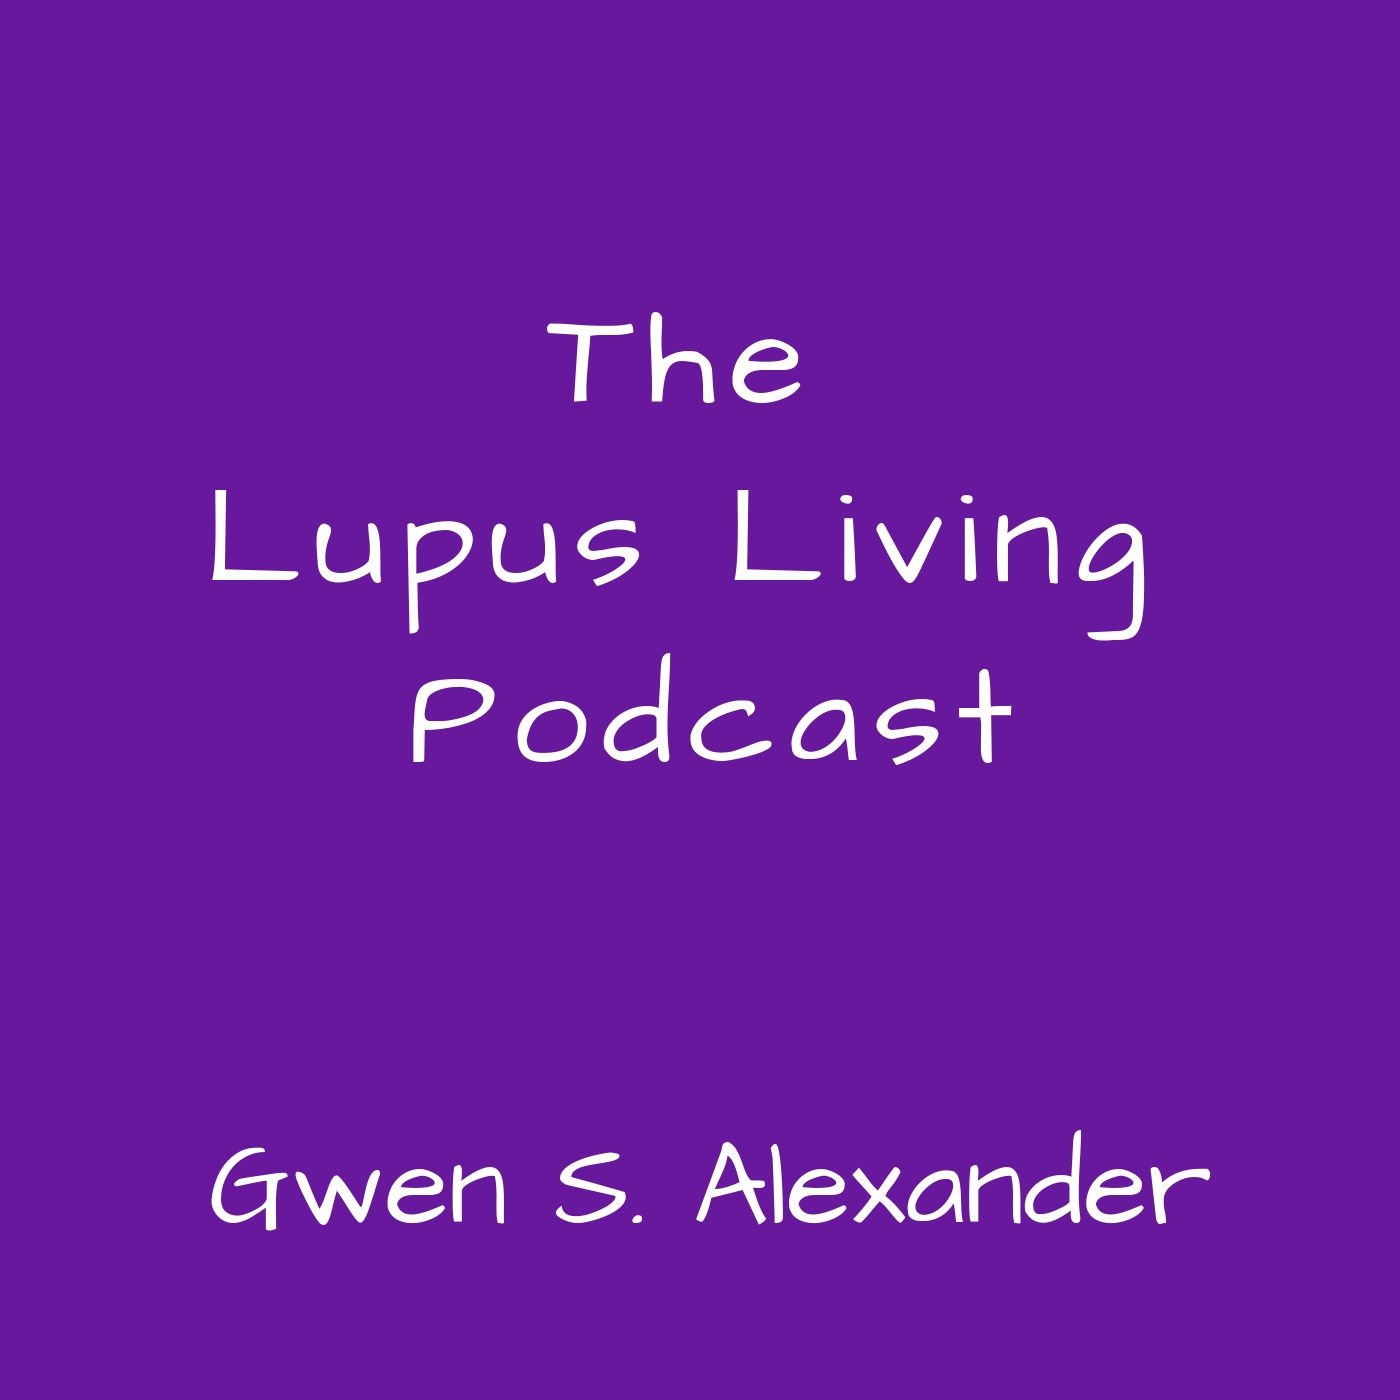 The Lupus Living Podcast show art